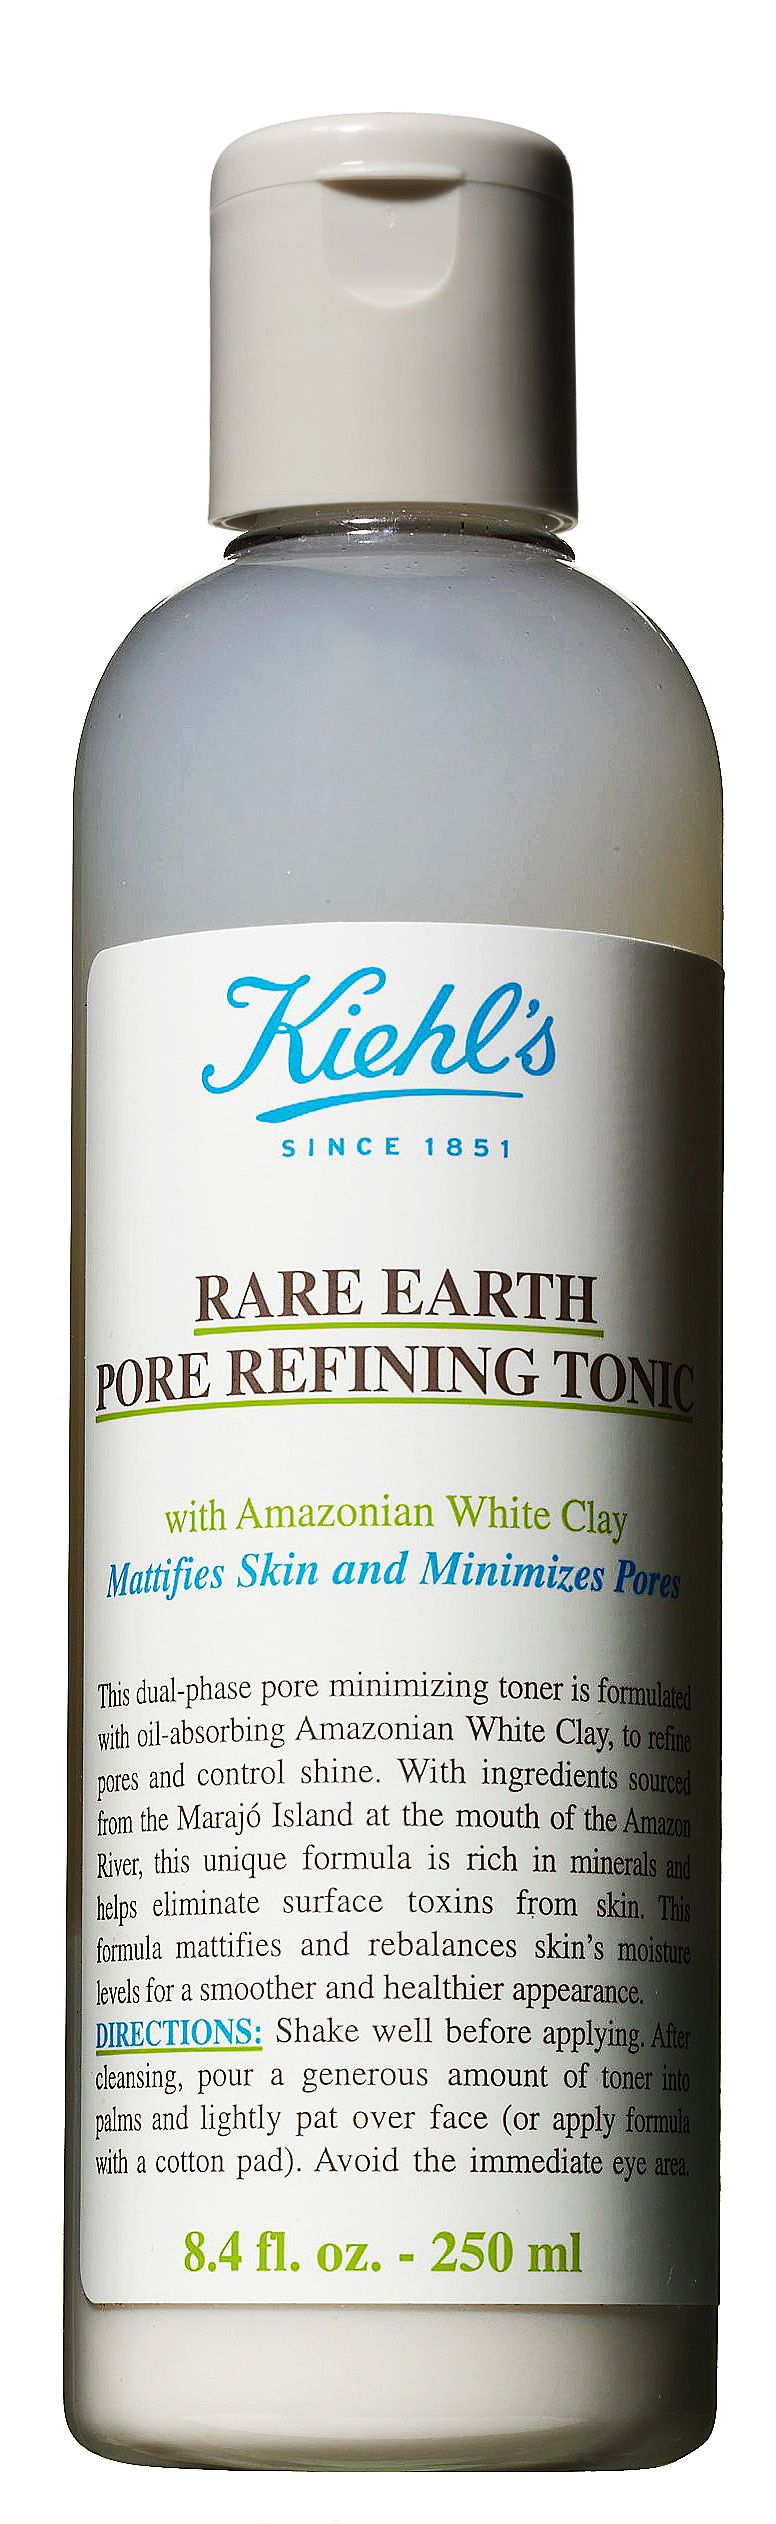 Rare Earth Pore Refining Tonic, 250ml